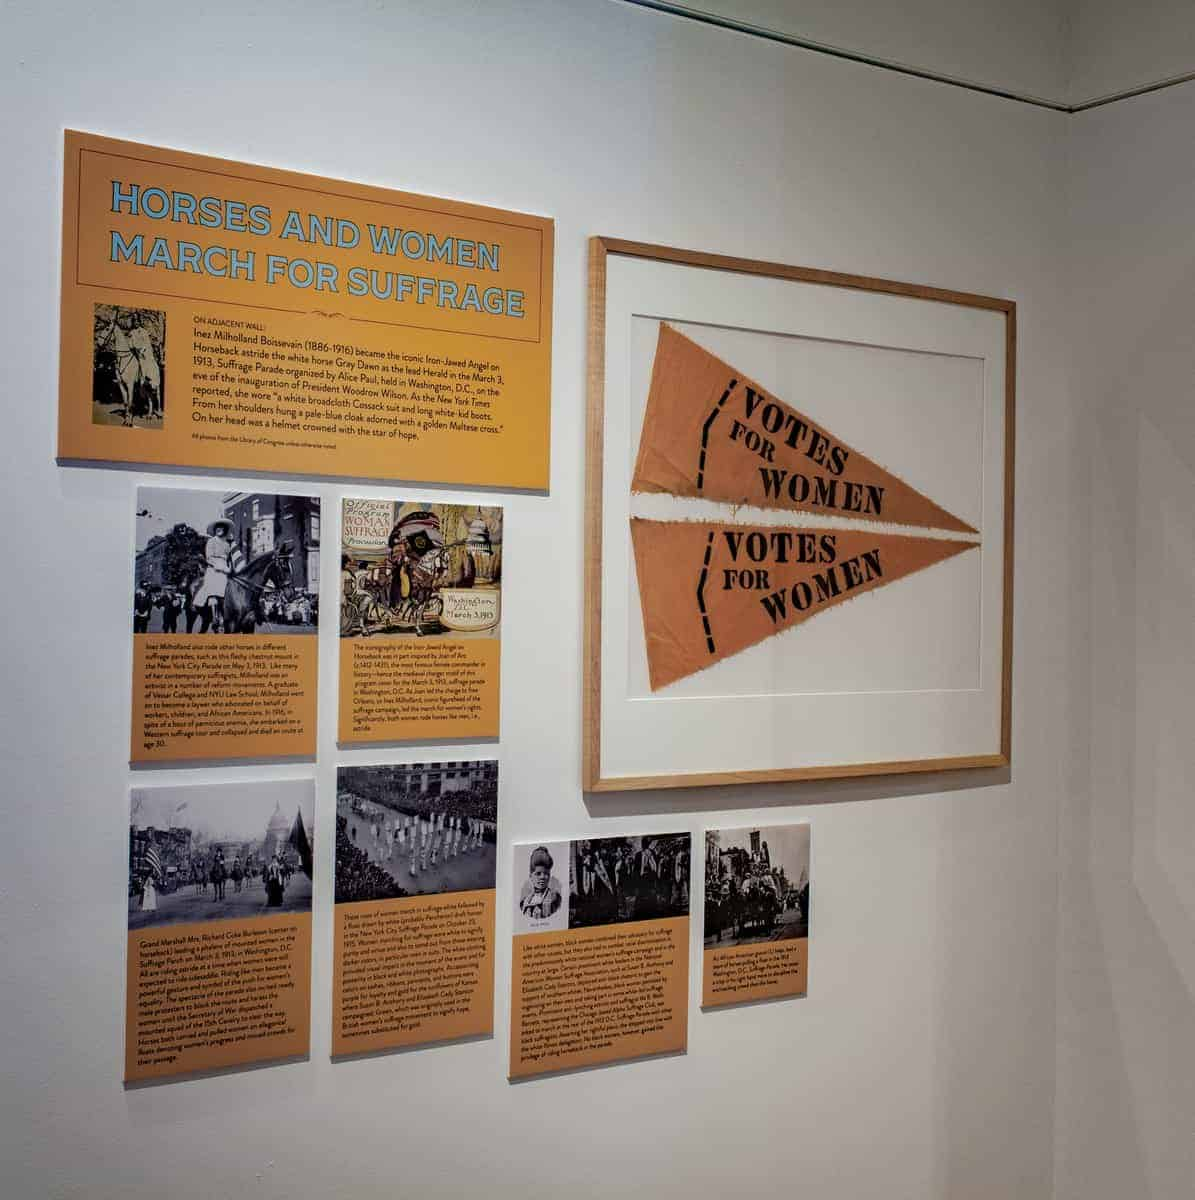 A series of printed panels attached to a white gallery wall show reproduction photographs from the Library of Congress. These images primarily consist of women with their horses in suffrage parades circa 1913. Each image is accompanied by text.